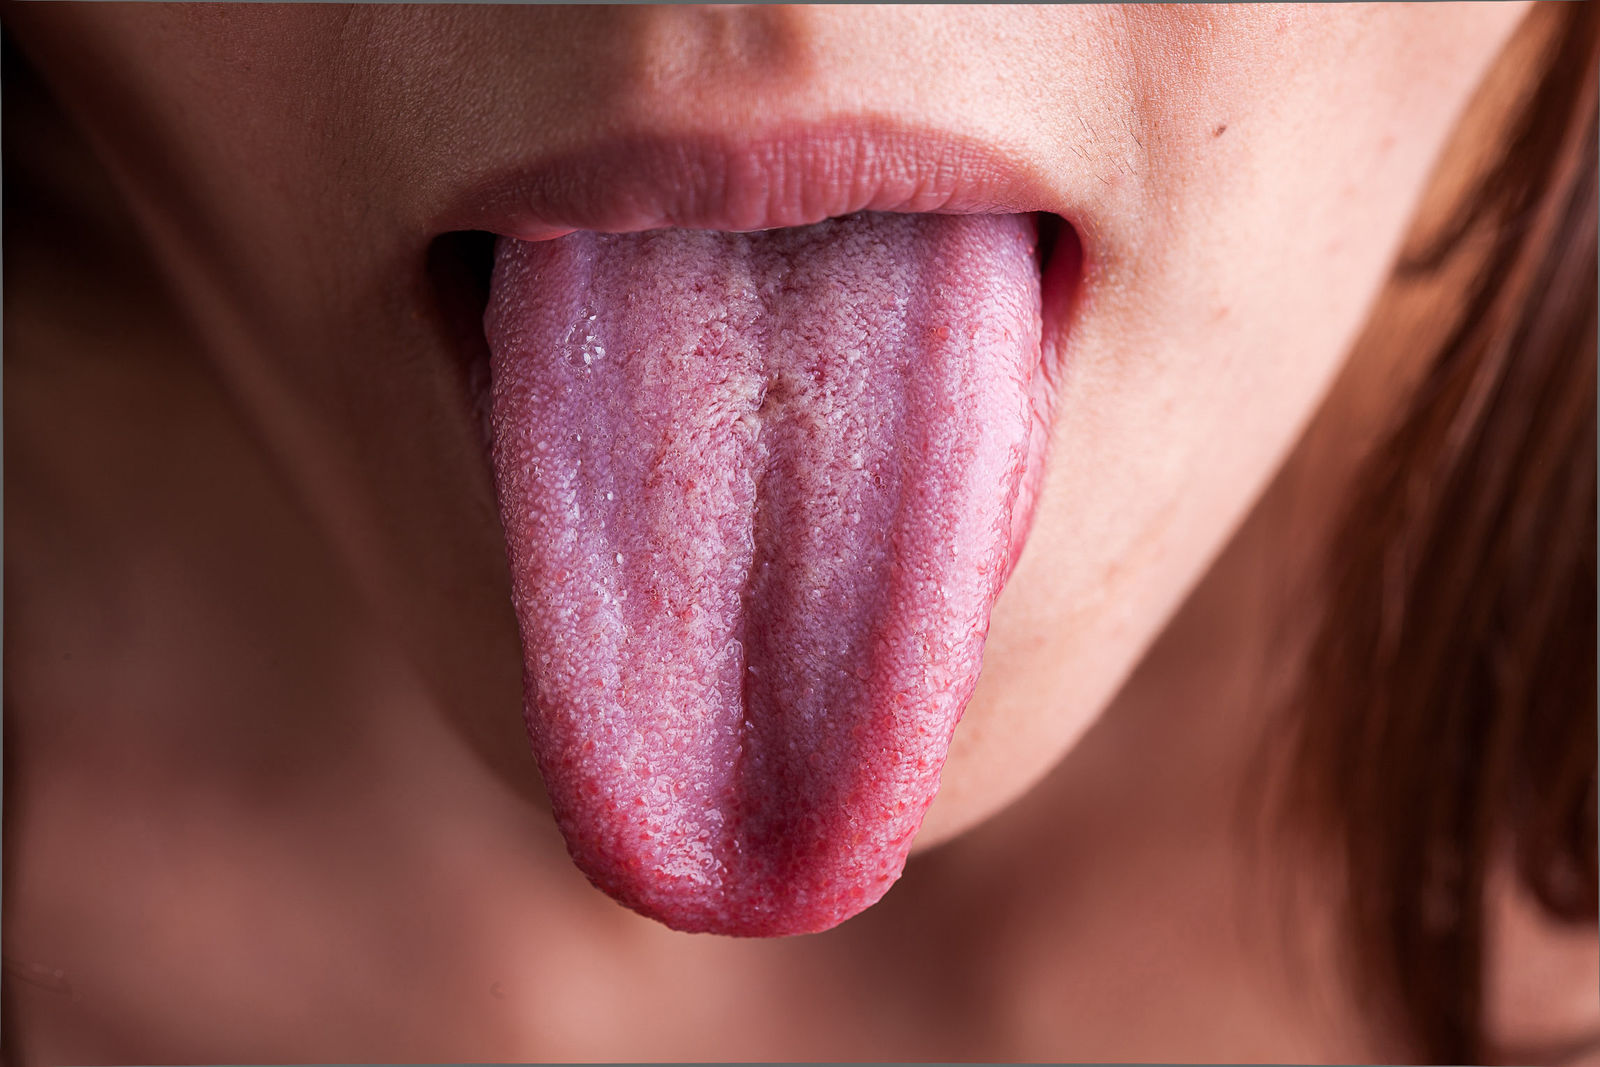 tongue-shots-oral-floss